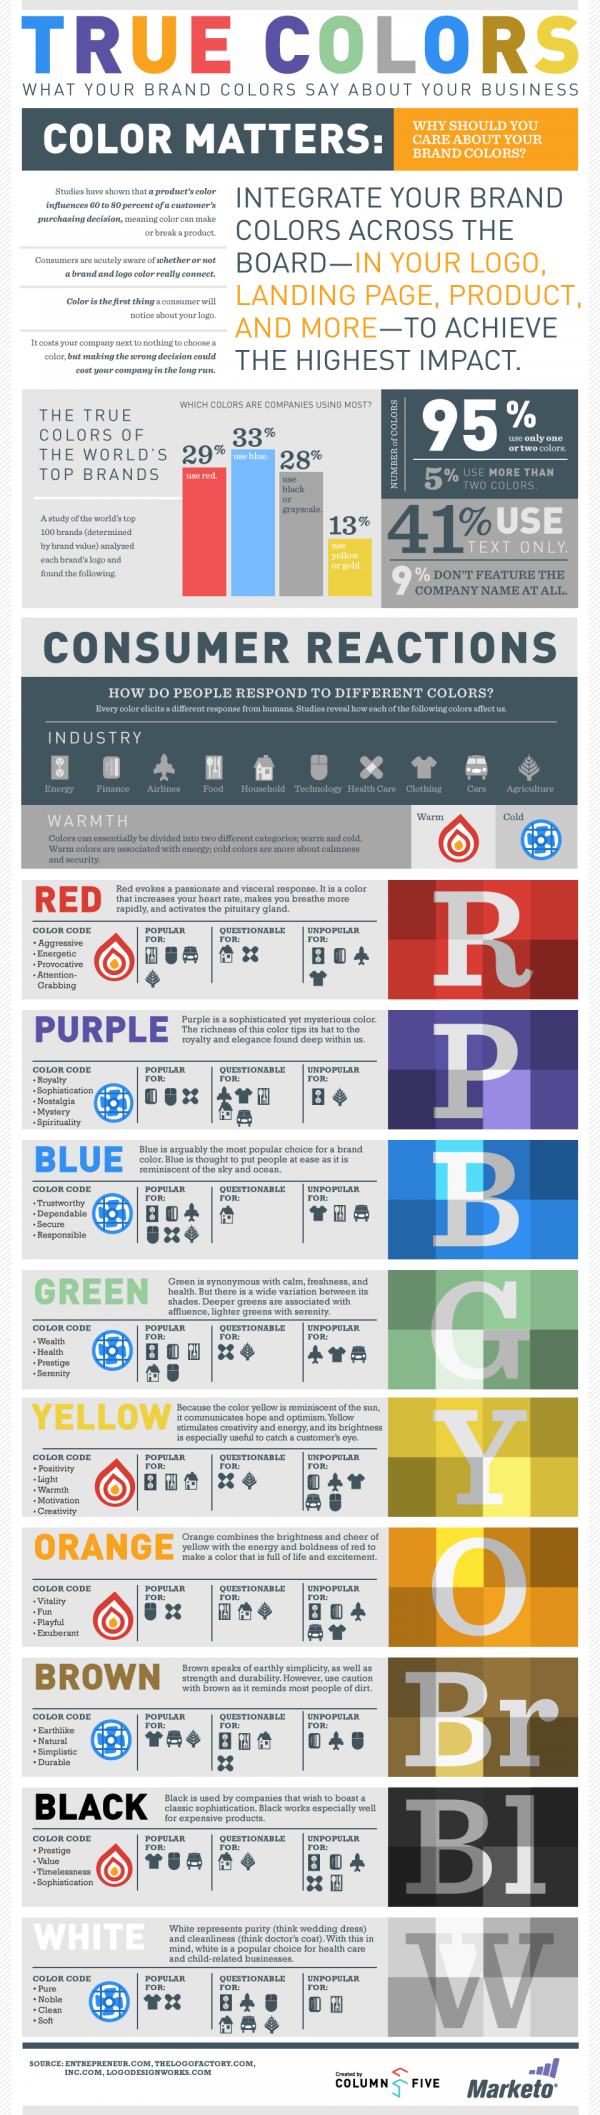 Marketo-brand-colors-600x2115